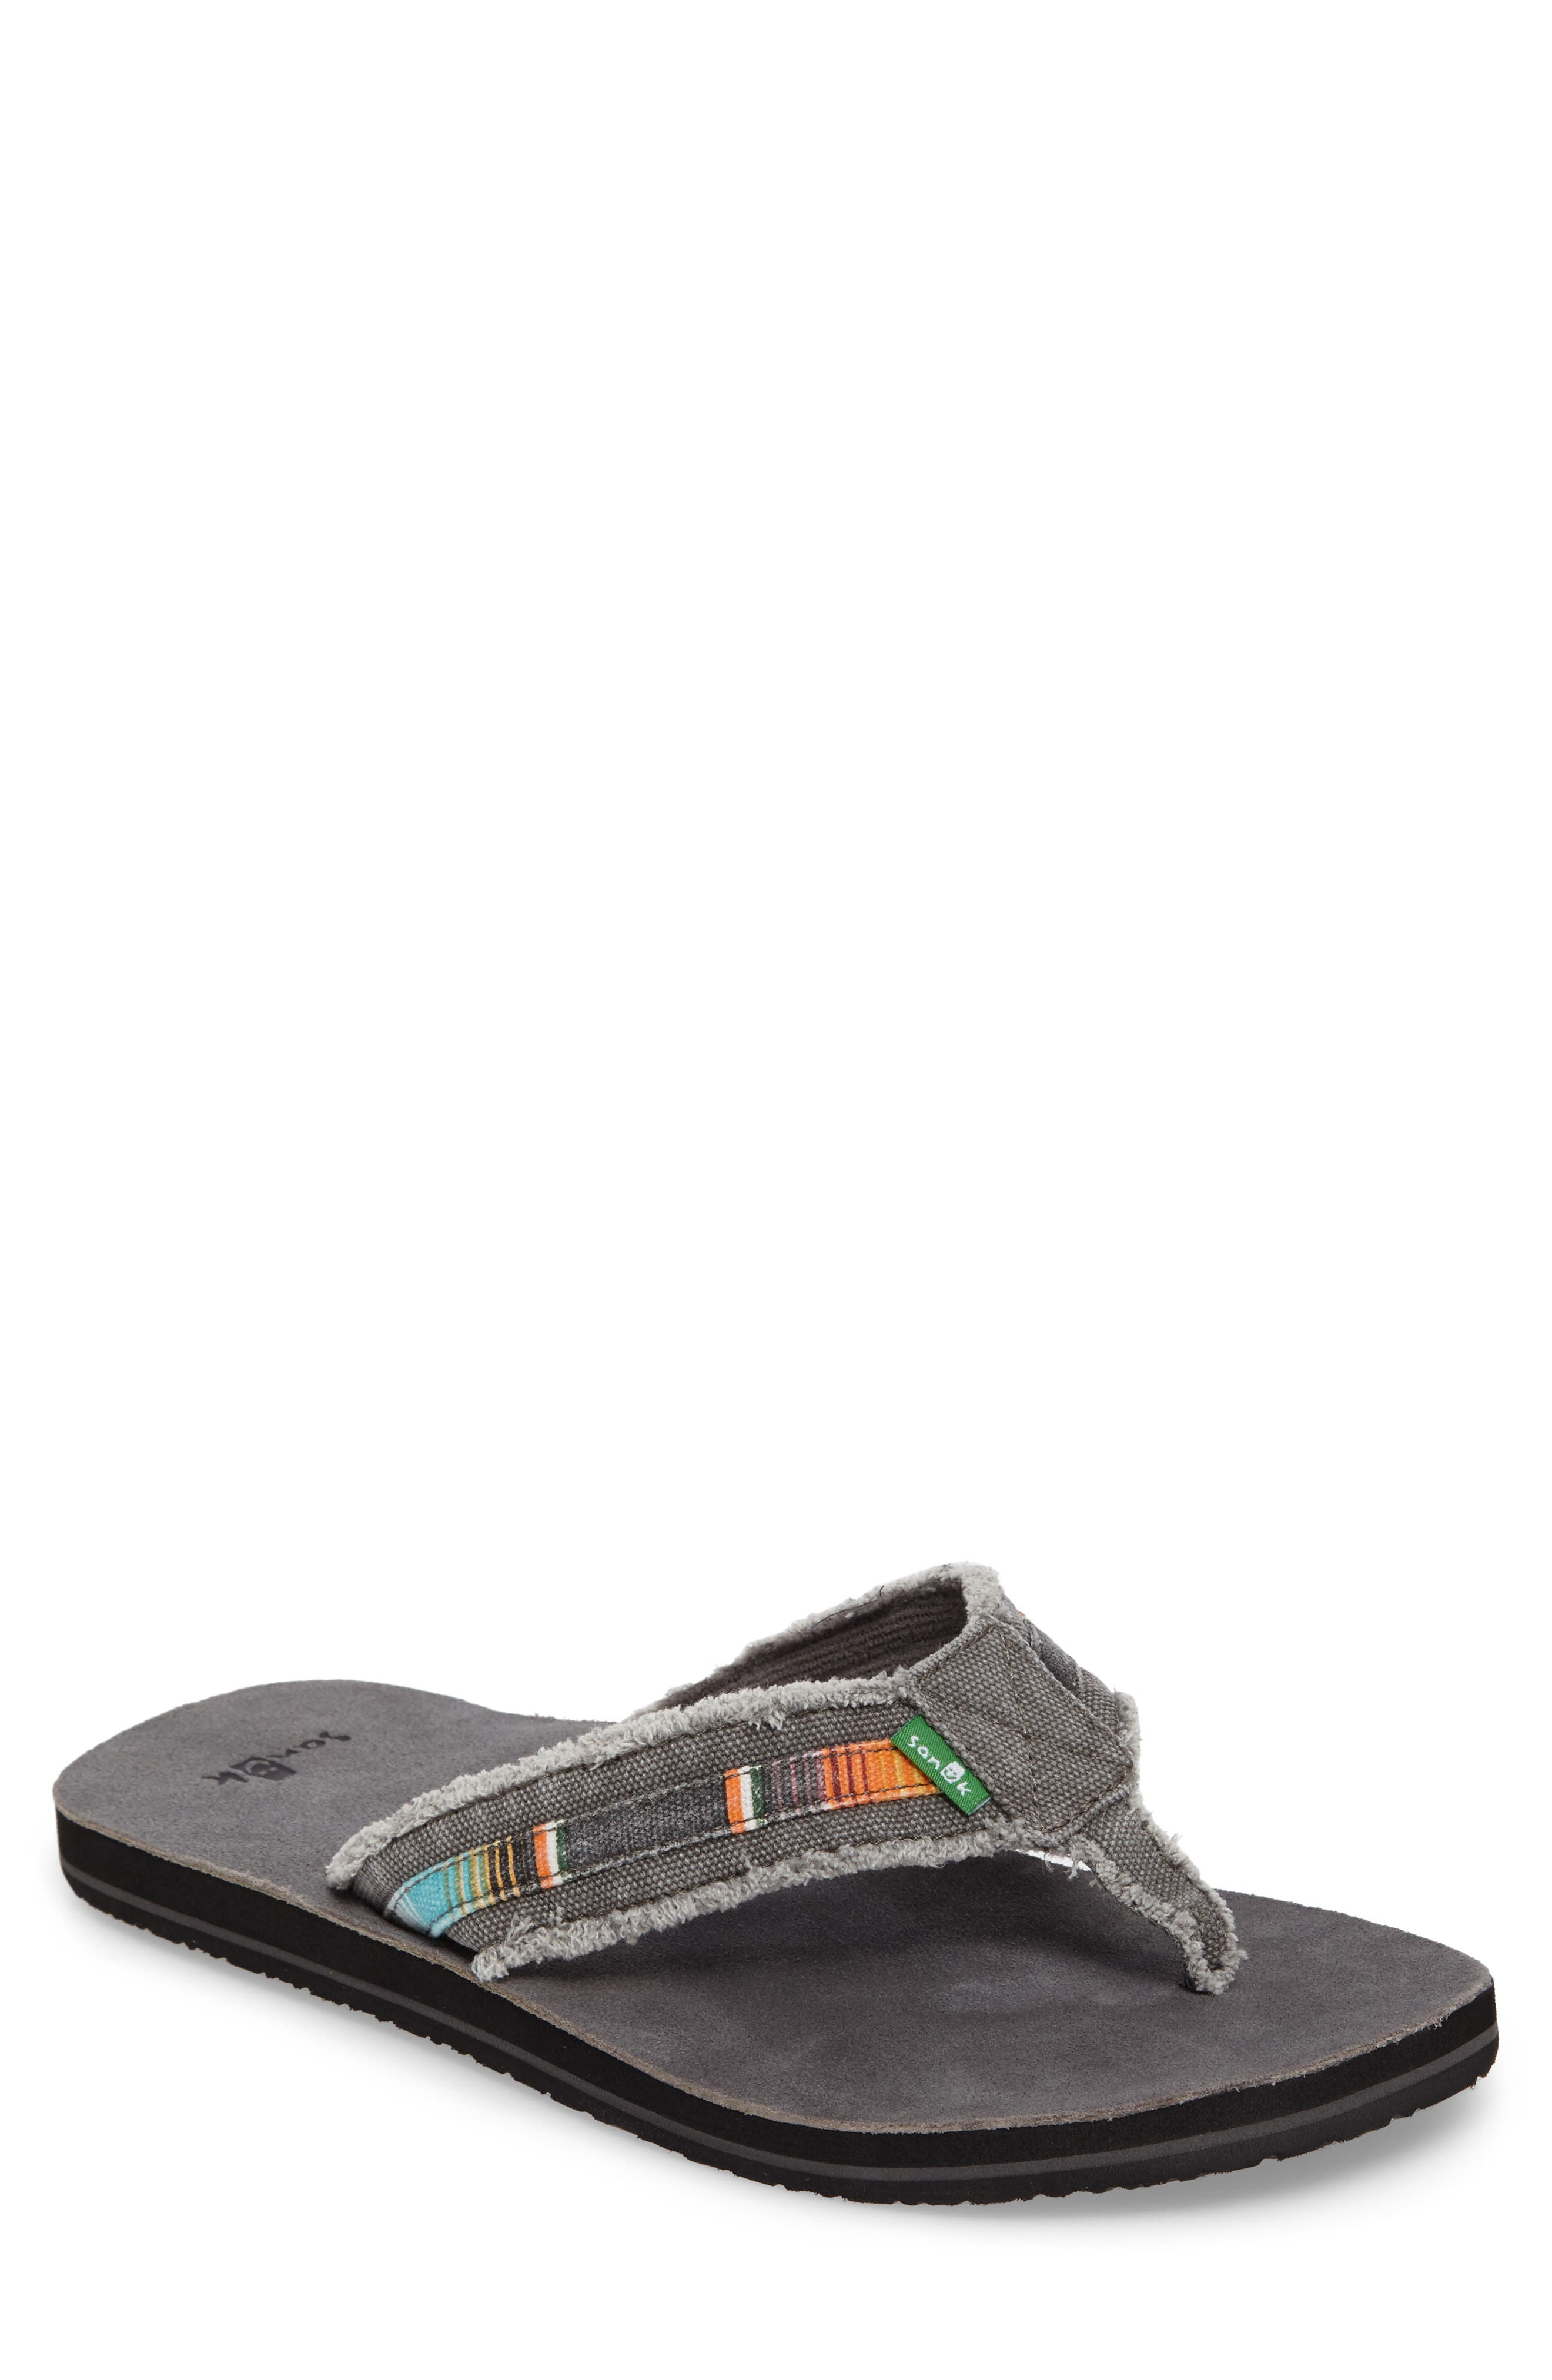 Alternate Image 1 Selected - Sanuk Fraid So Flip Flop (Men)